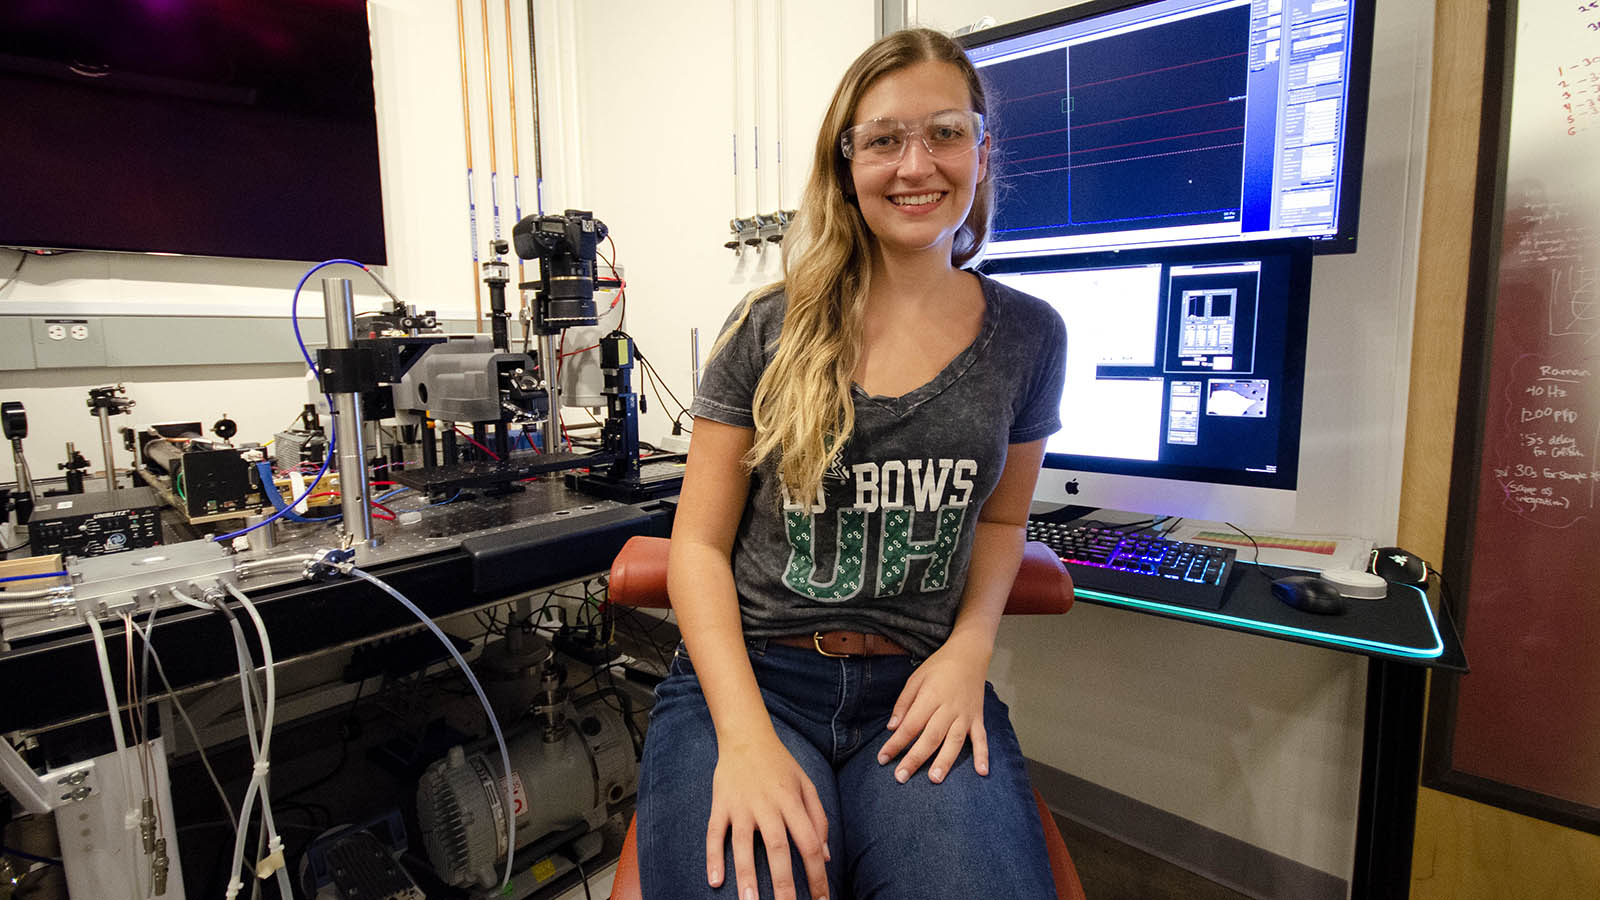 Ireland wears lab goggles and a University of Hawaii T-shirt. She sits in front of several screens and the lab version of SHERLOC.